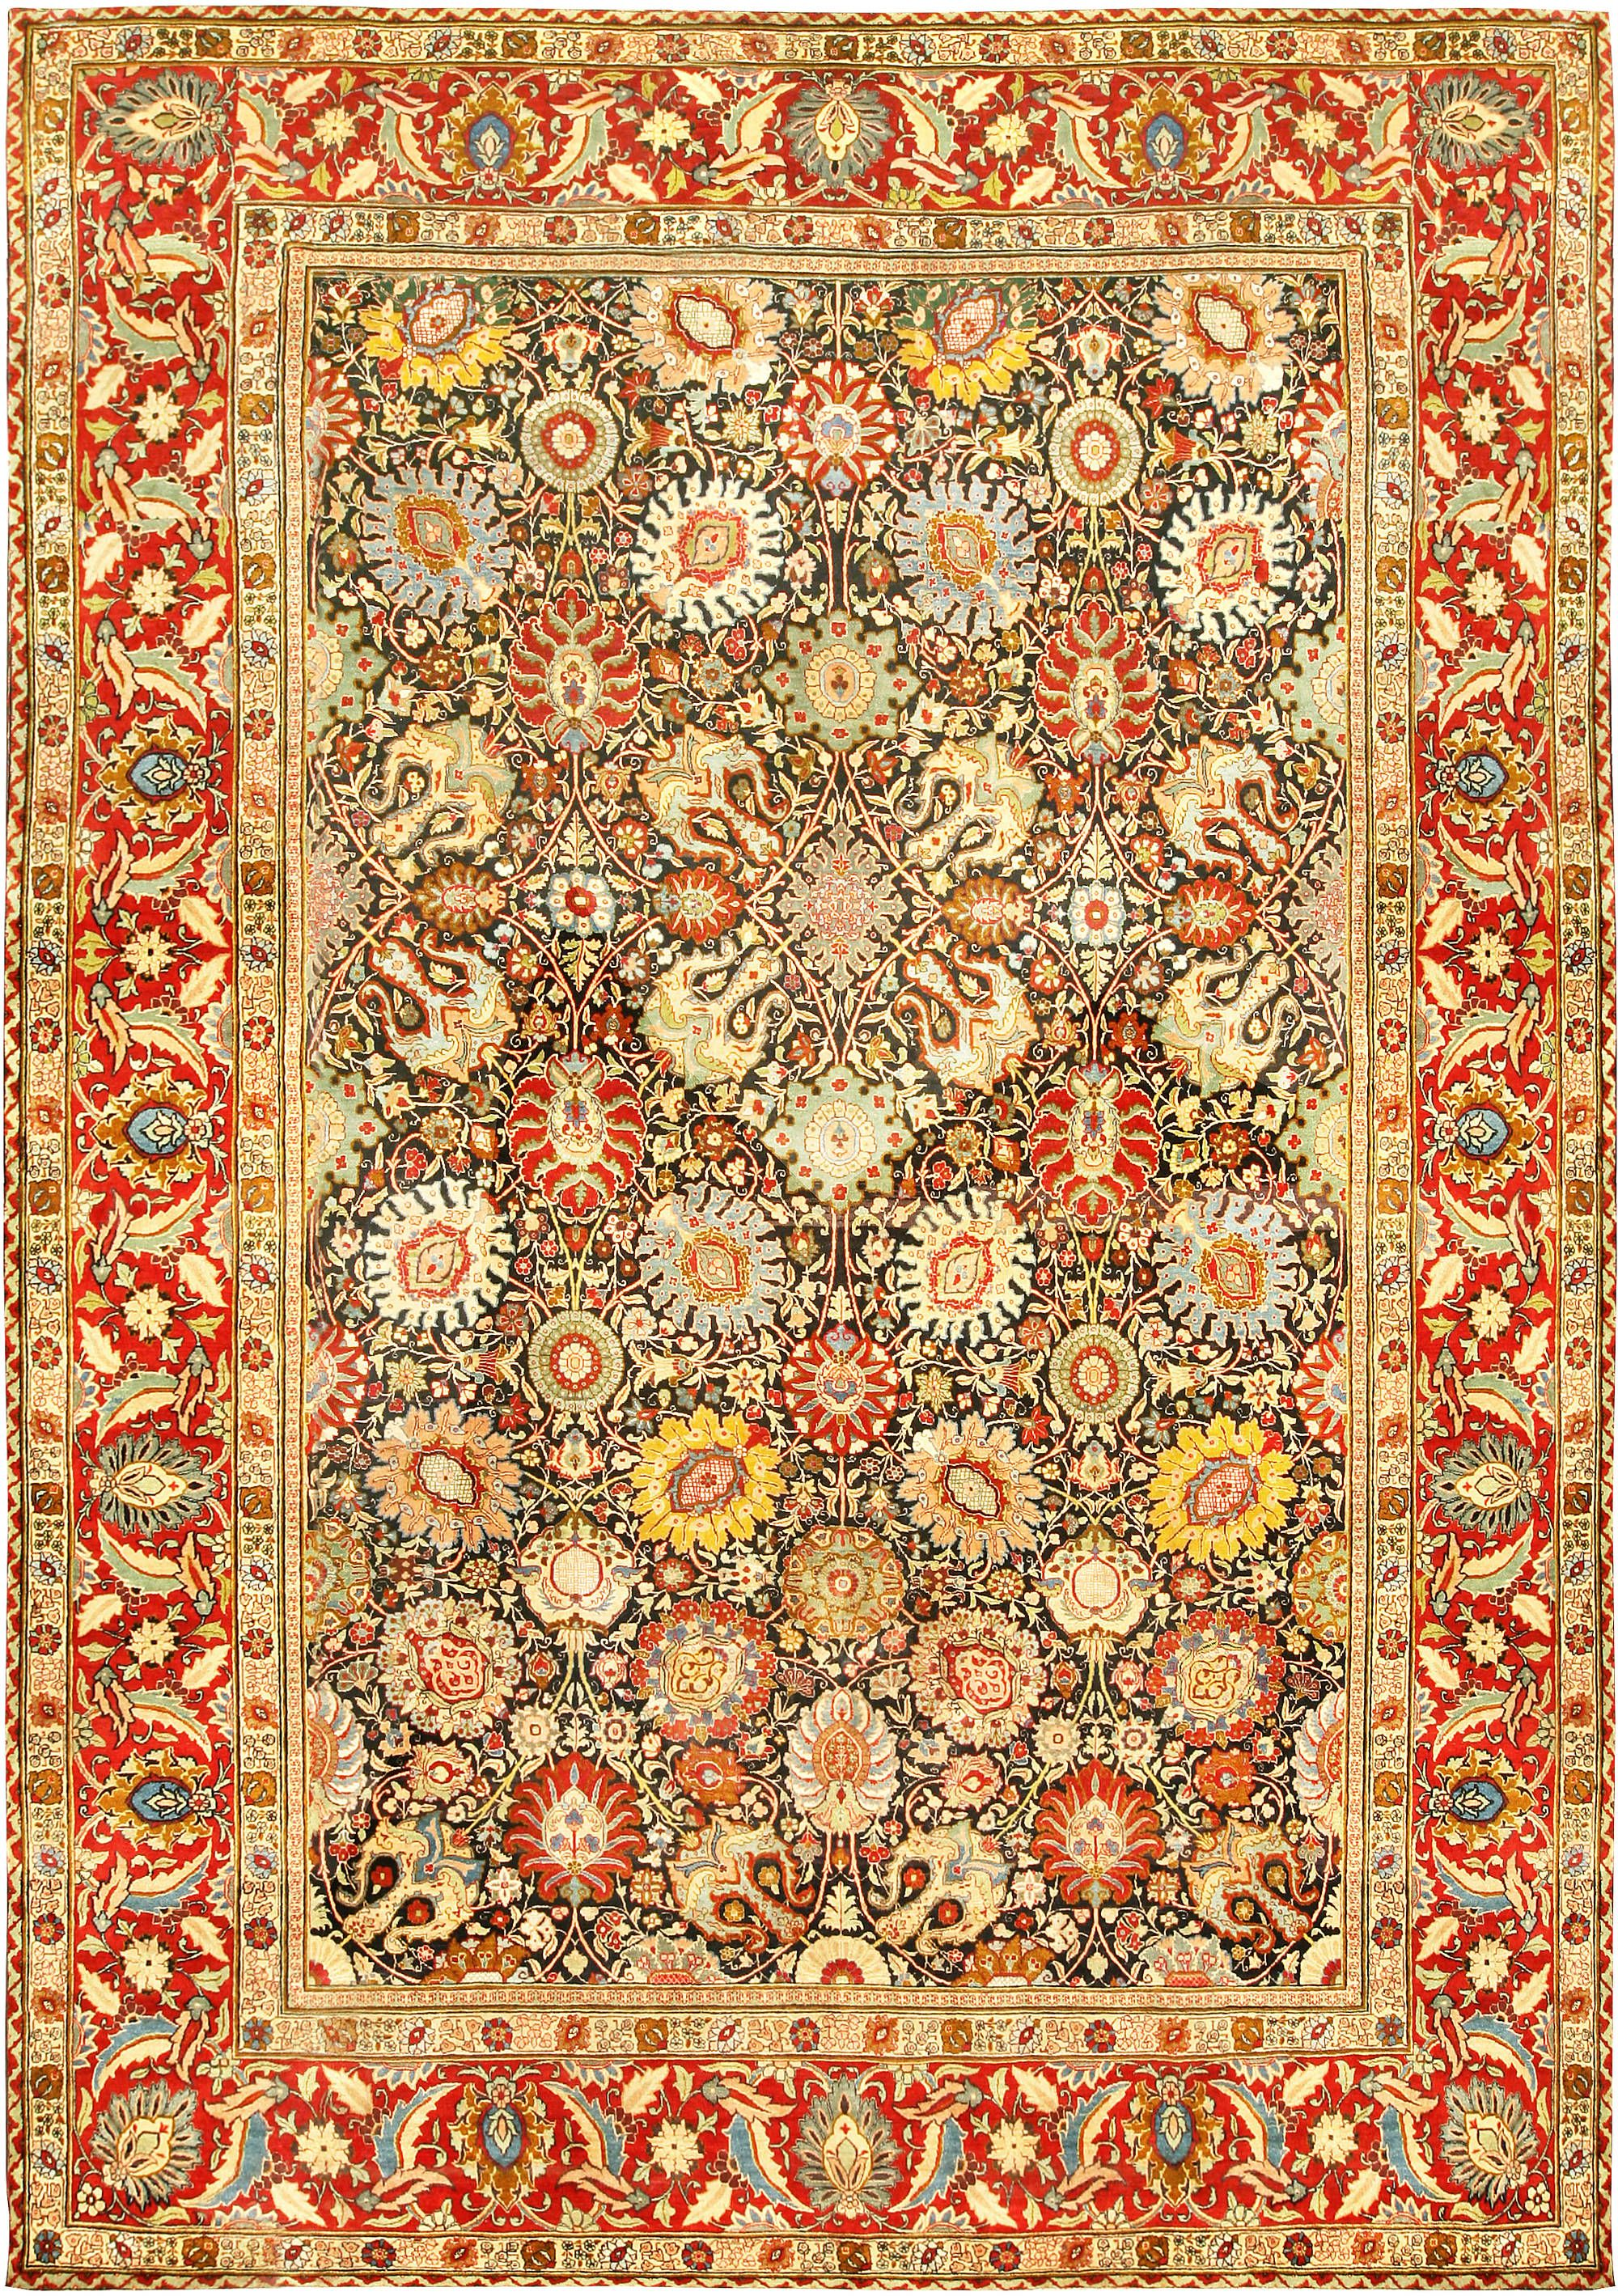 Antique Persian Tabriz Rug Size Adjusted Tabriz Rug Persian Tabriz Rug Antique Carpets